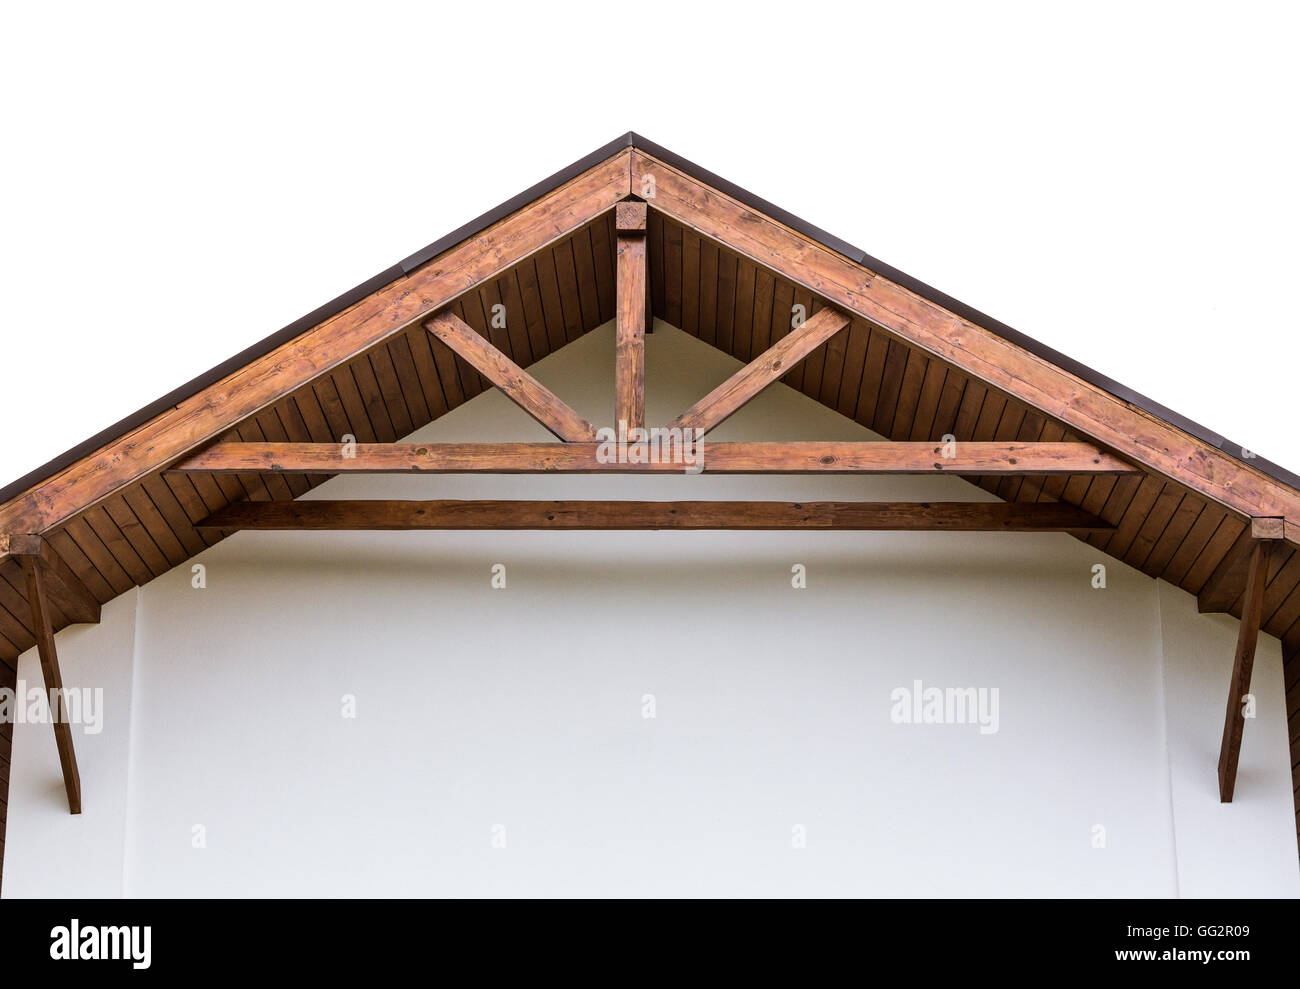 Gable Of New Home With Wooden Roof Rafters